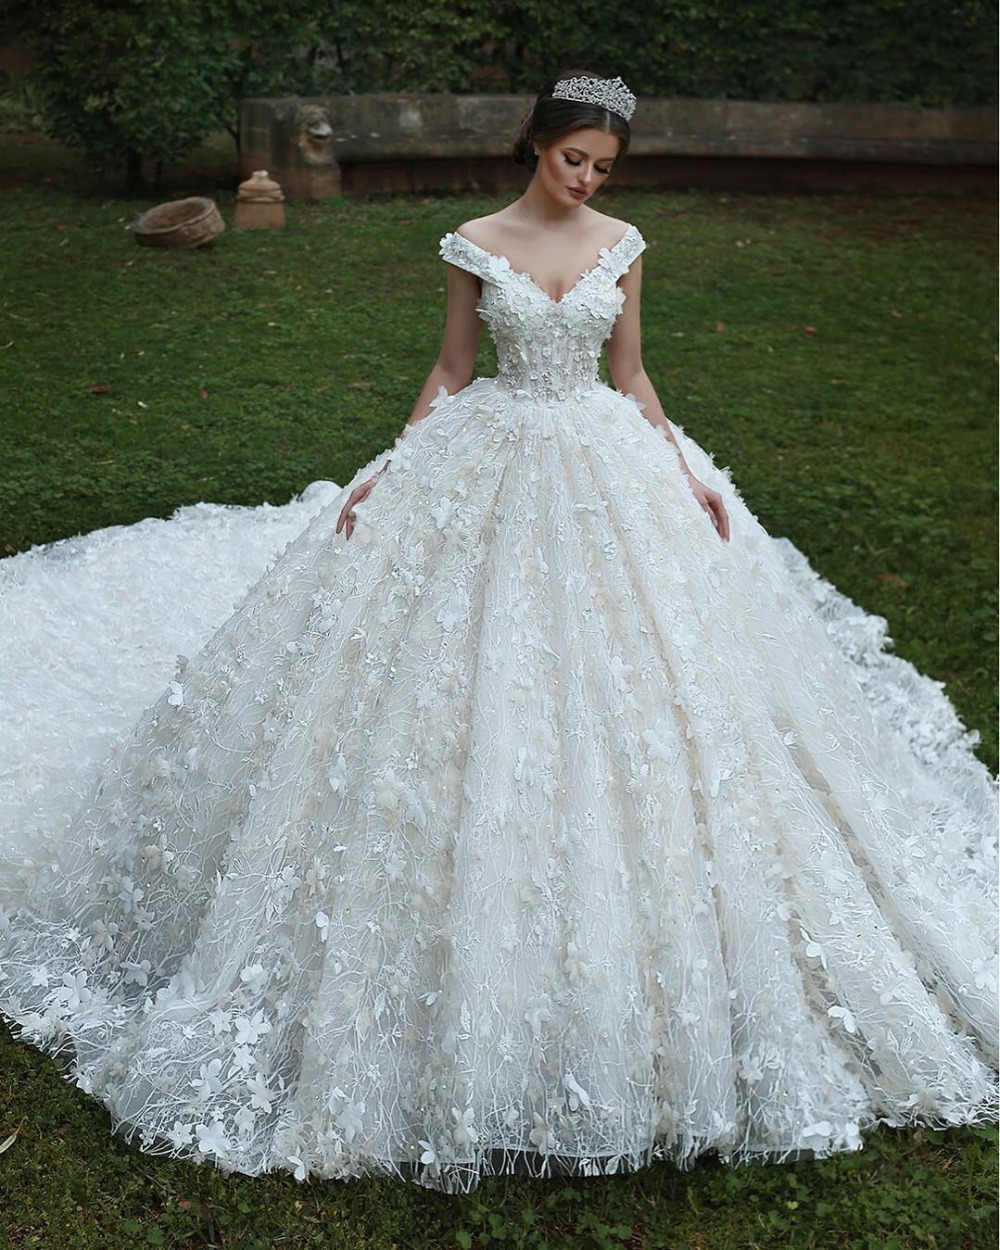 5eef37a5a6d3 Eslieb High-end Custom made lace V-Neck Ball Gown Wedding Dresses Fashion  Wedding